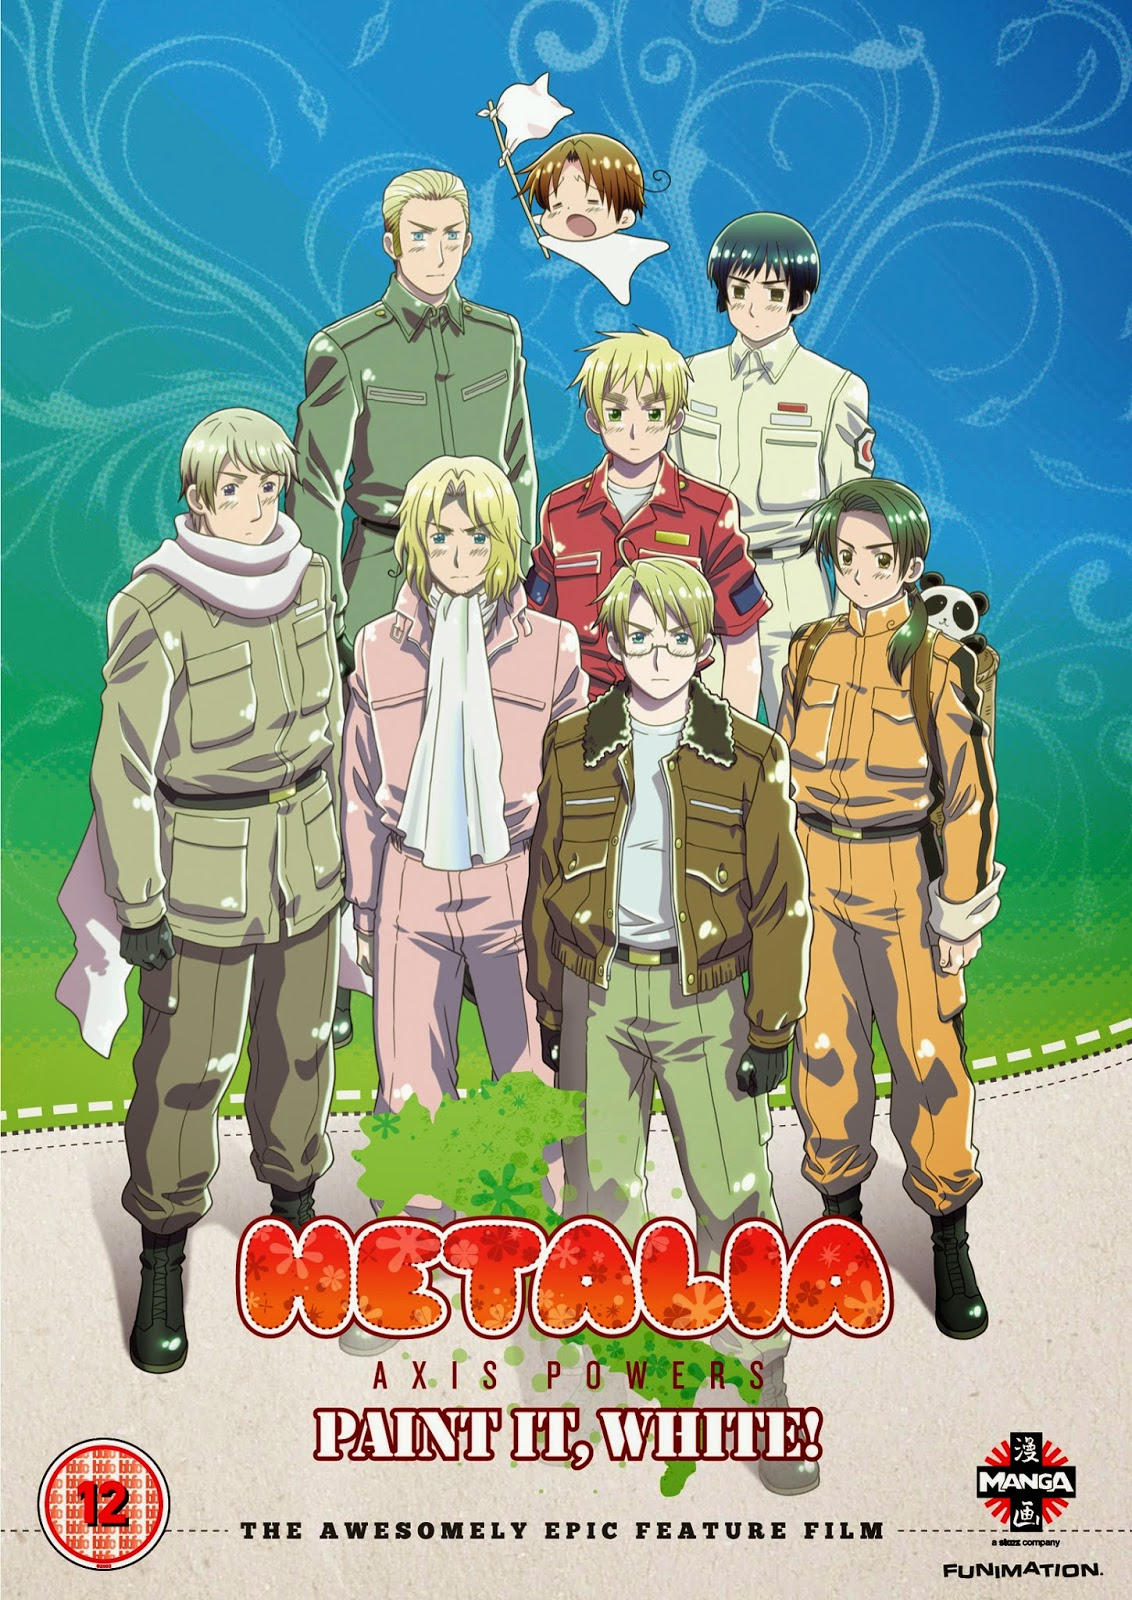 Movie Review: Hetalia! Paint it, White